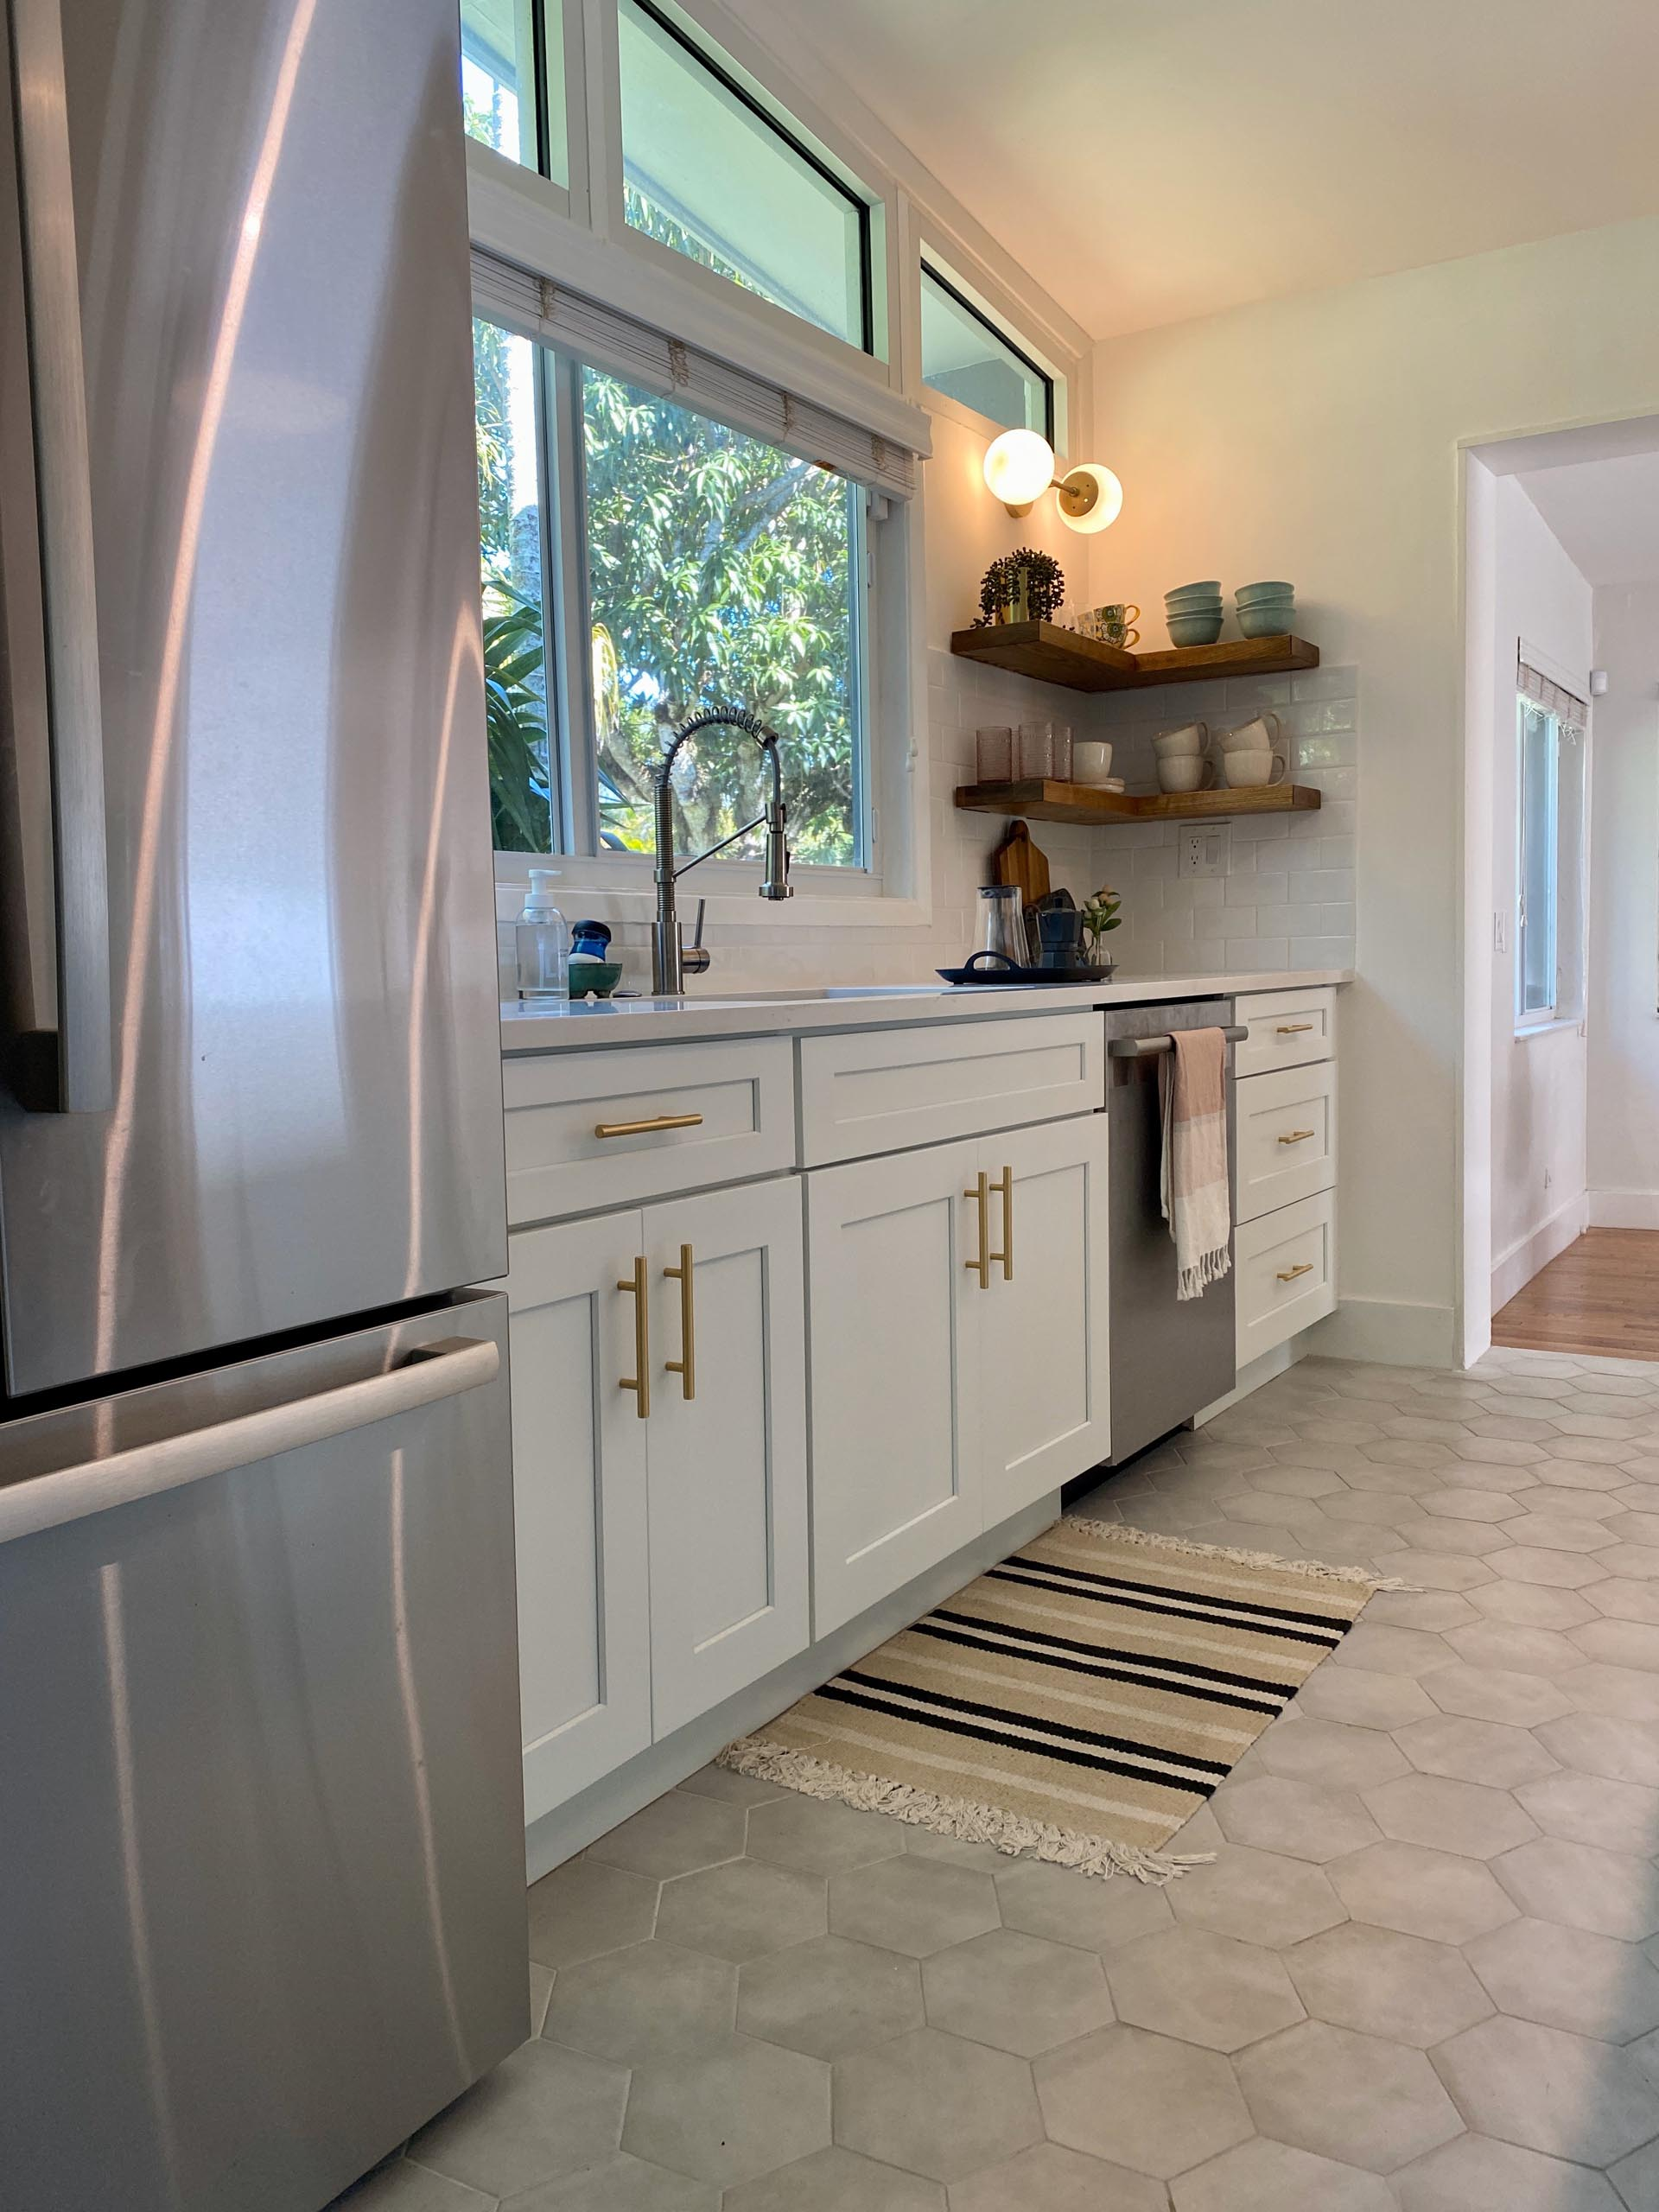 A modern and open kitchen with a peninsula, white cabinets, gold accents, floating wood shelving, and hexagonal floor tiles.